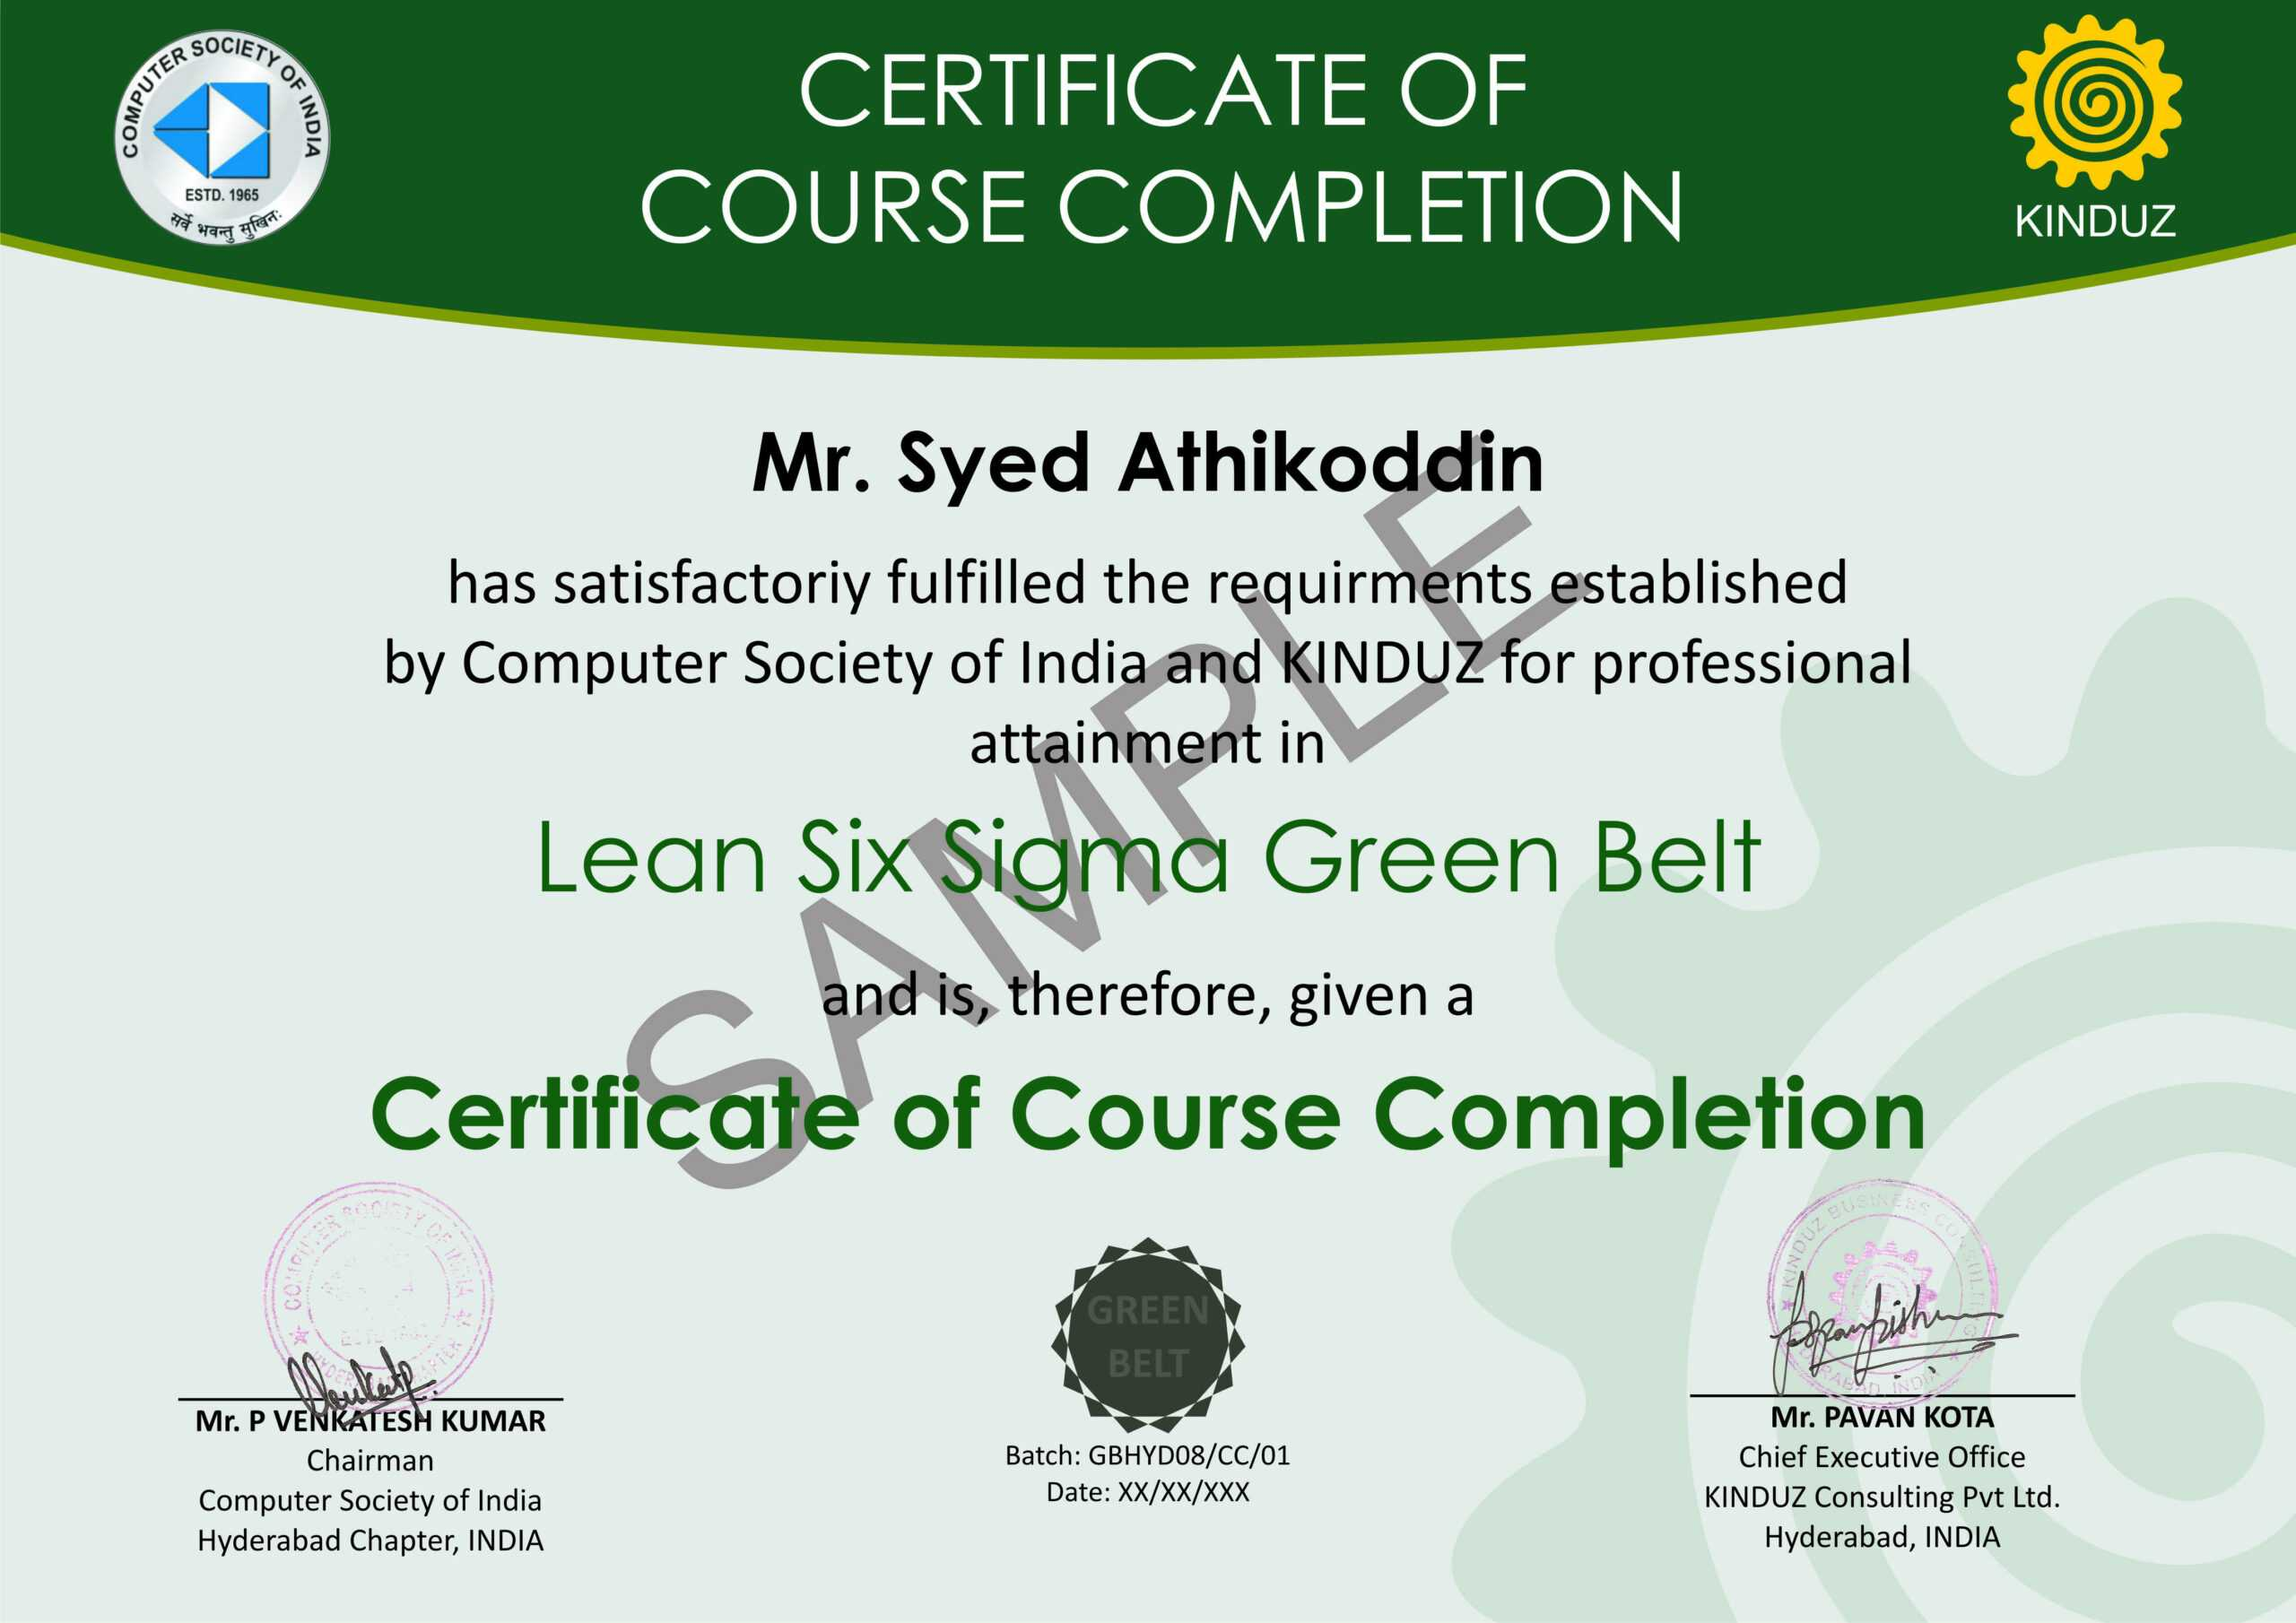 Sample Certificates - Lean Six Sigma India Within Green Belt Certificate Template